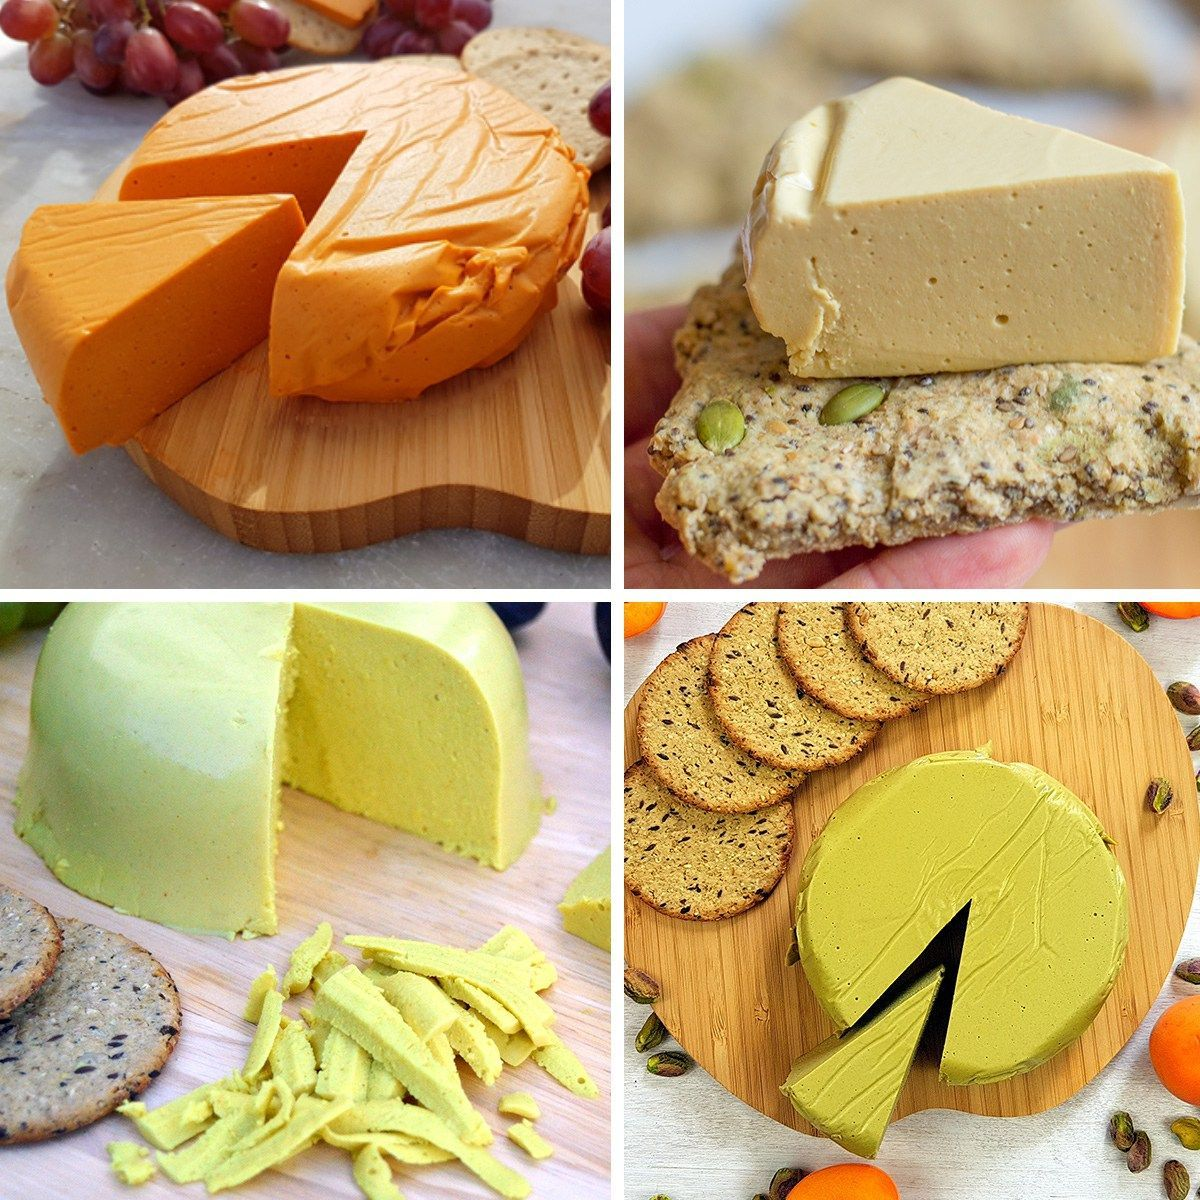 Vegan Cheese Recipes Firm Sliceable And Grate Able In 2020 Vegan Cheese Recipes Easy Cheese Recipes Vegan Cheese